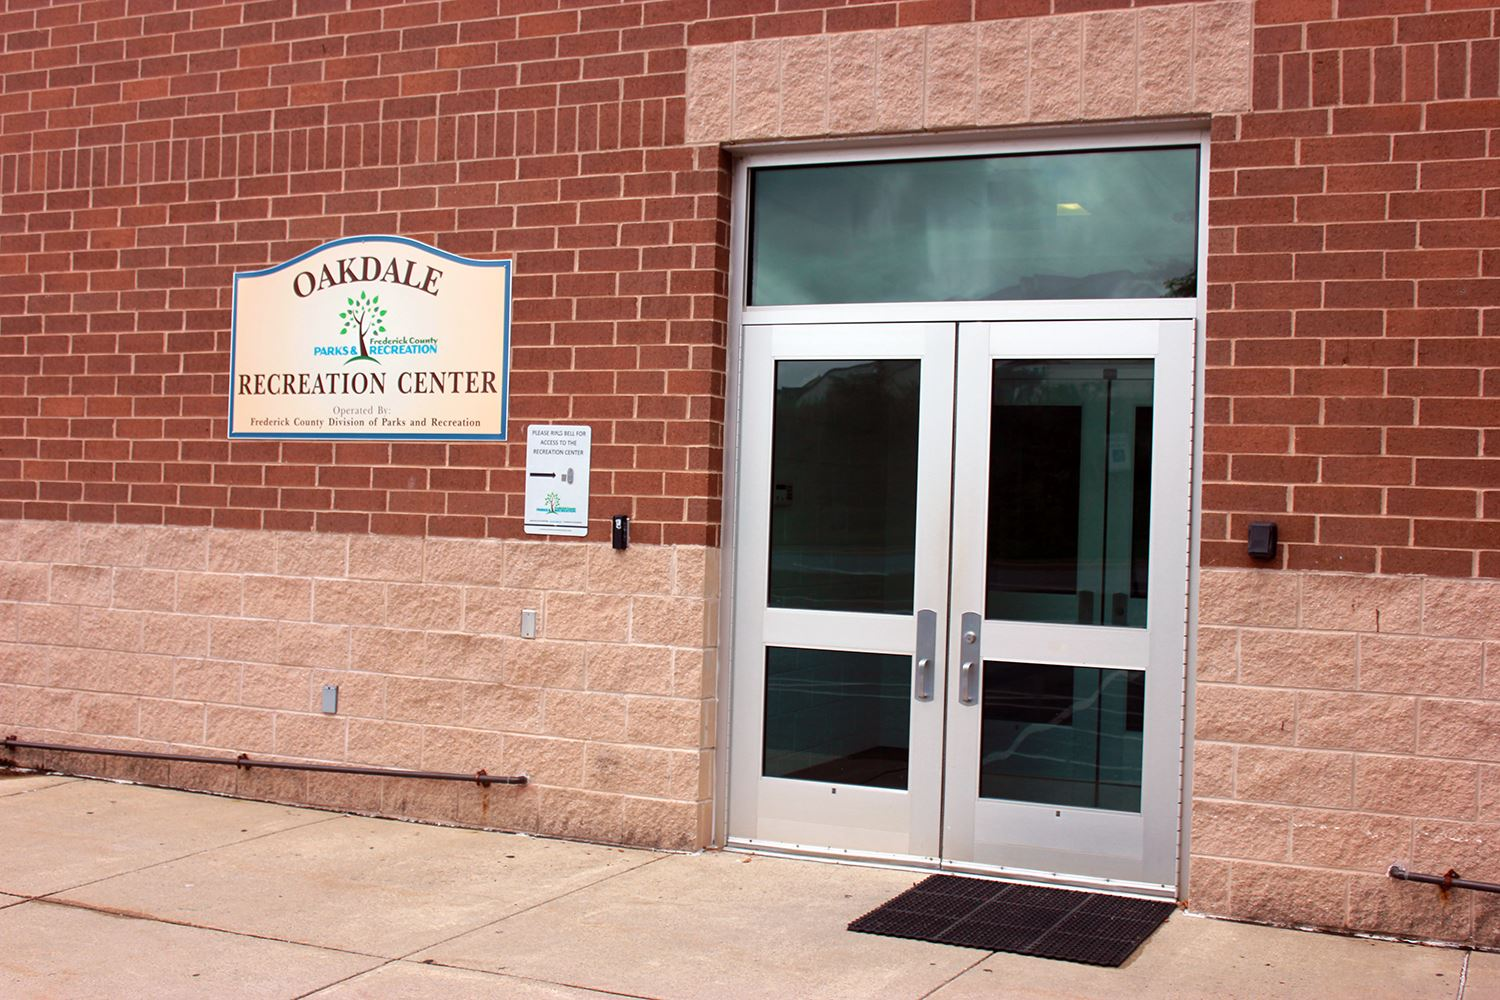 Oakdale Rec Center - Entrance